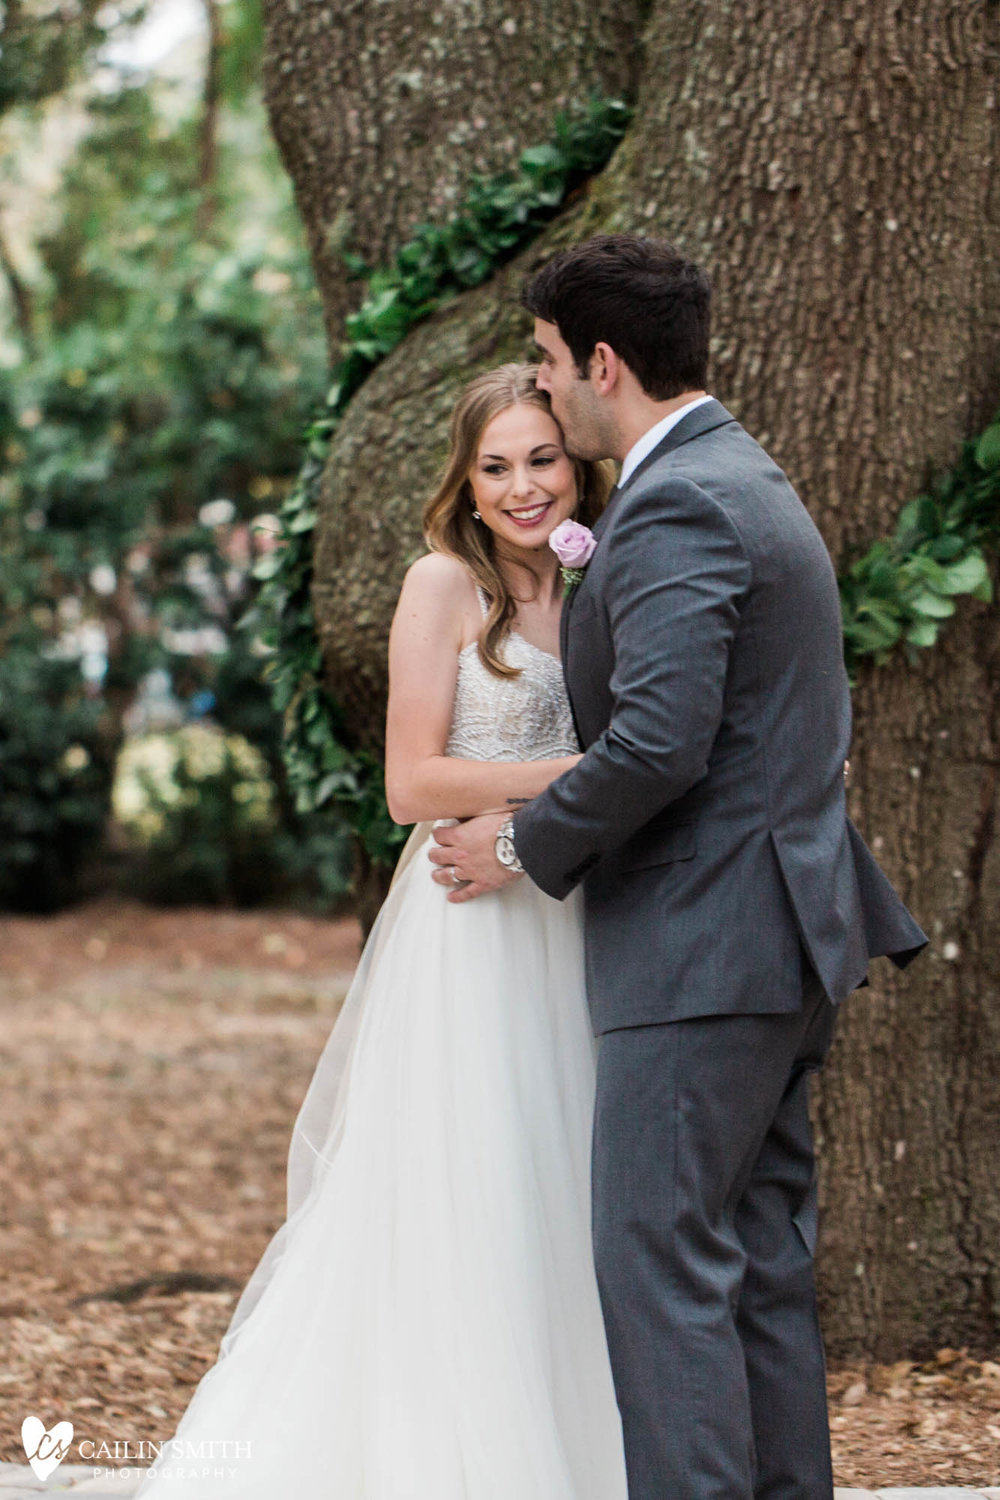 Sylvia_Anthony_Bowing_Oaks_Plantation_Wedding_Photography_0055.jpg